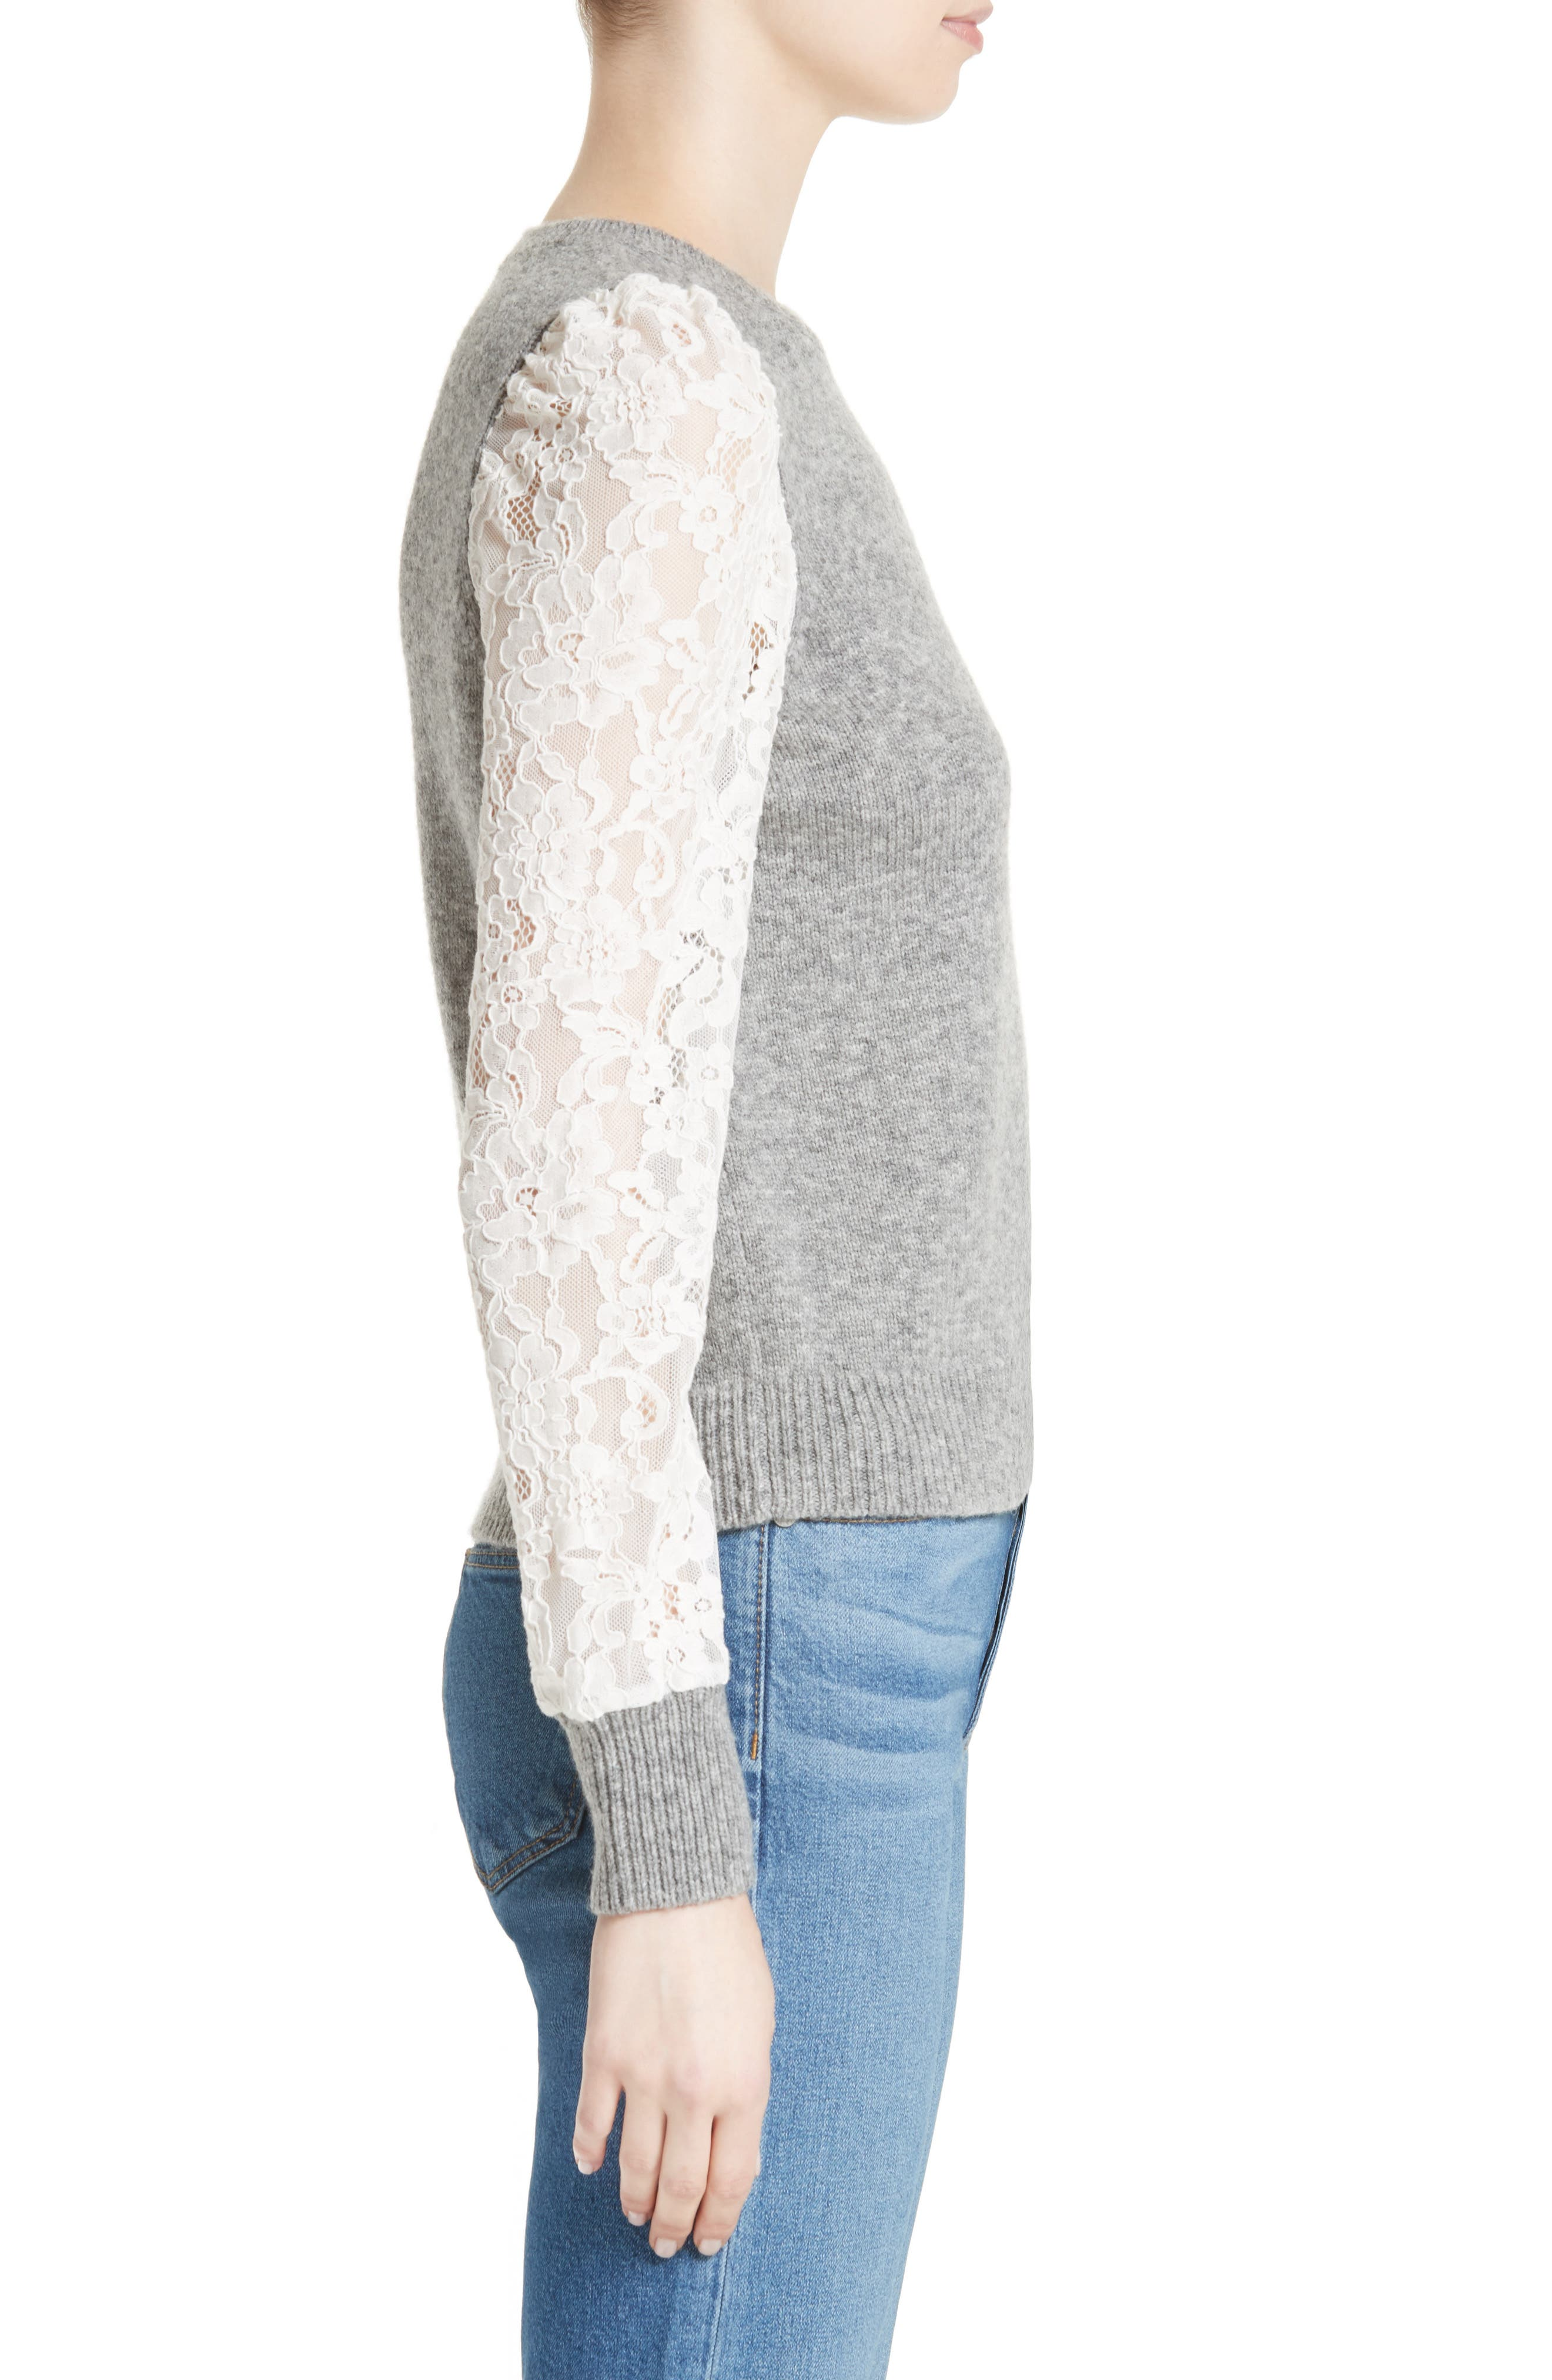 REBECCA TAYLOR,                             Lace Sleeve Sweater,                             Alternate thumbnail 3, color,                             063